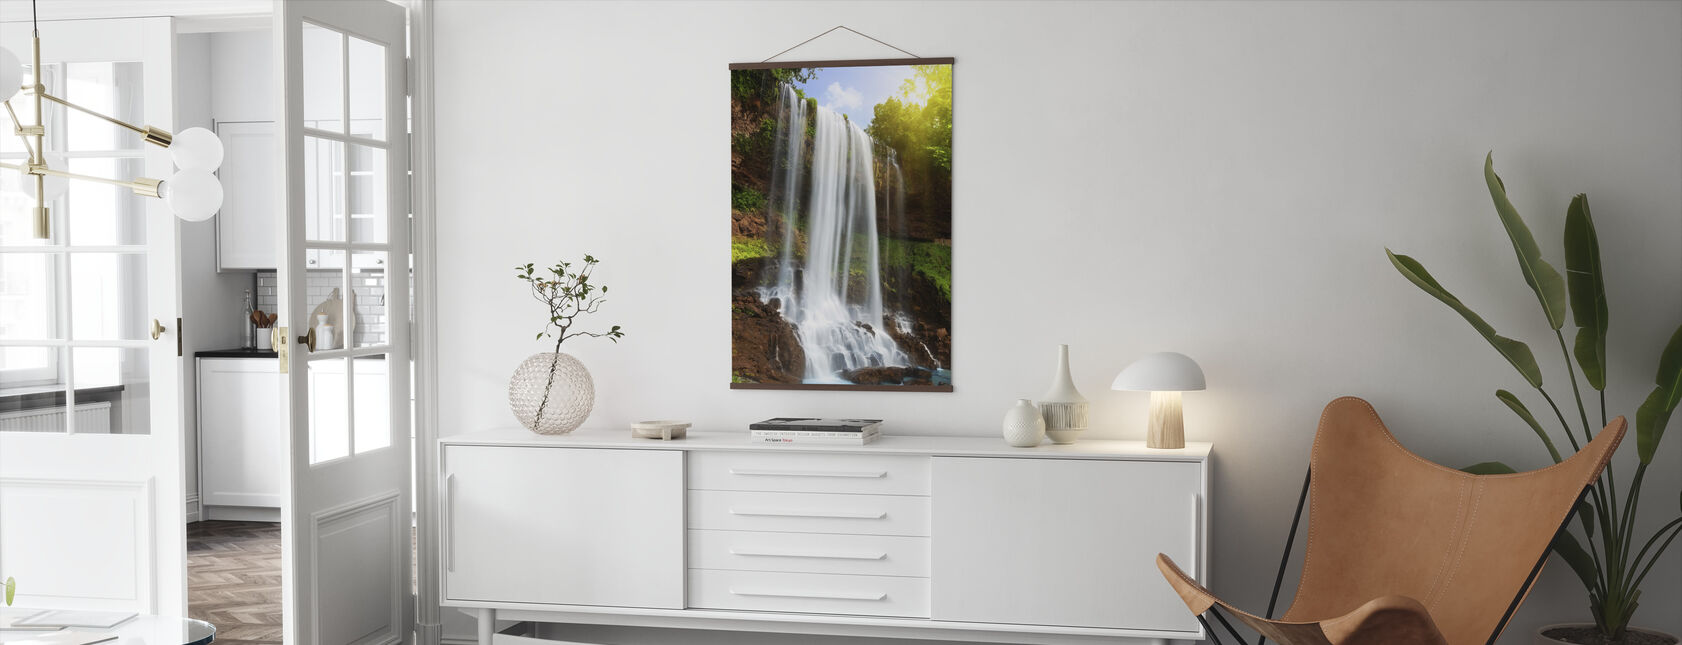 Waterfall in Rain Forest - Poster - Living Room